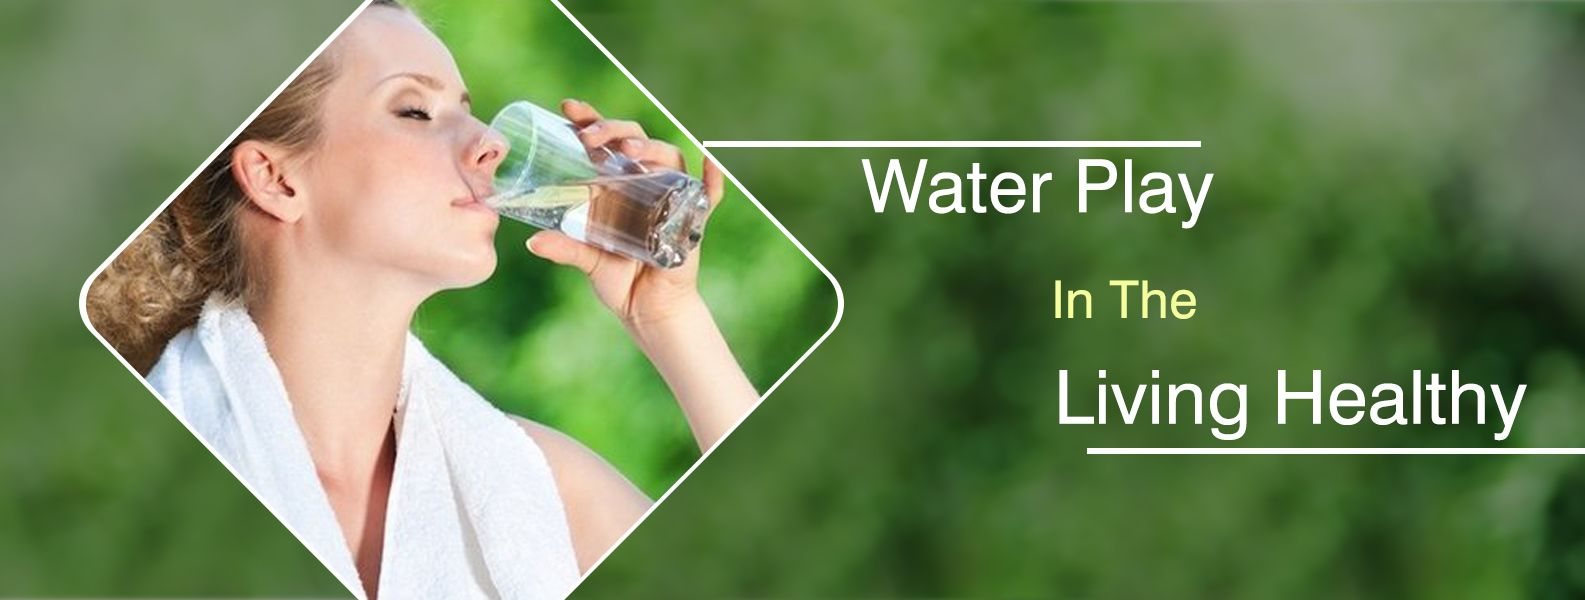 WHAT ROLE DOES WATER PLAY IN THE LIVING HEALTHY?